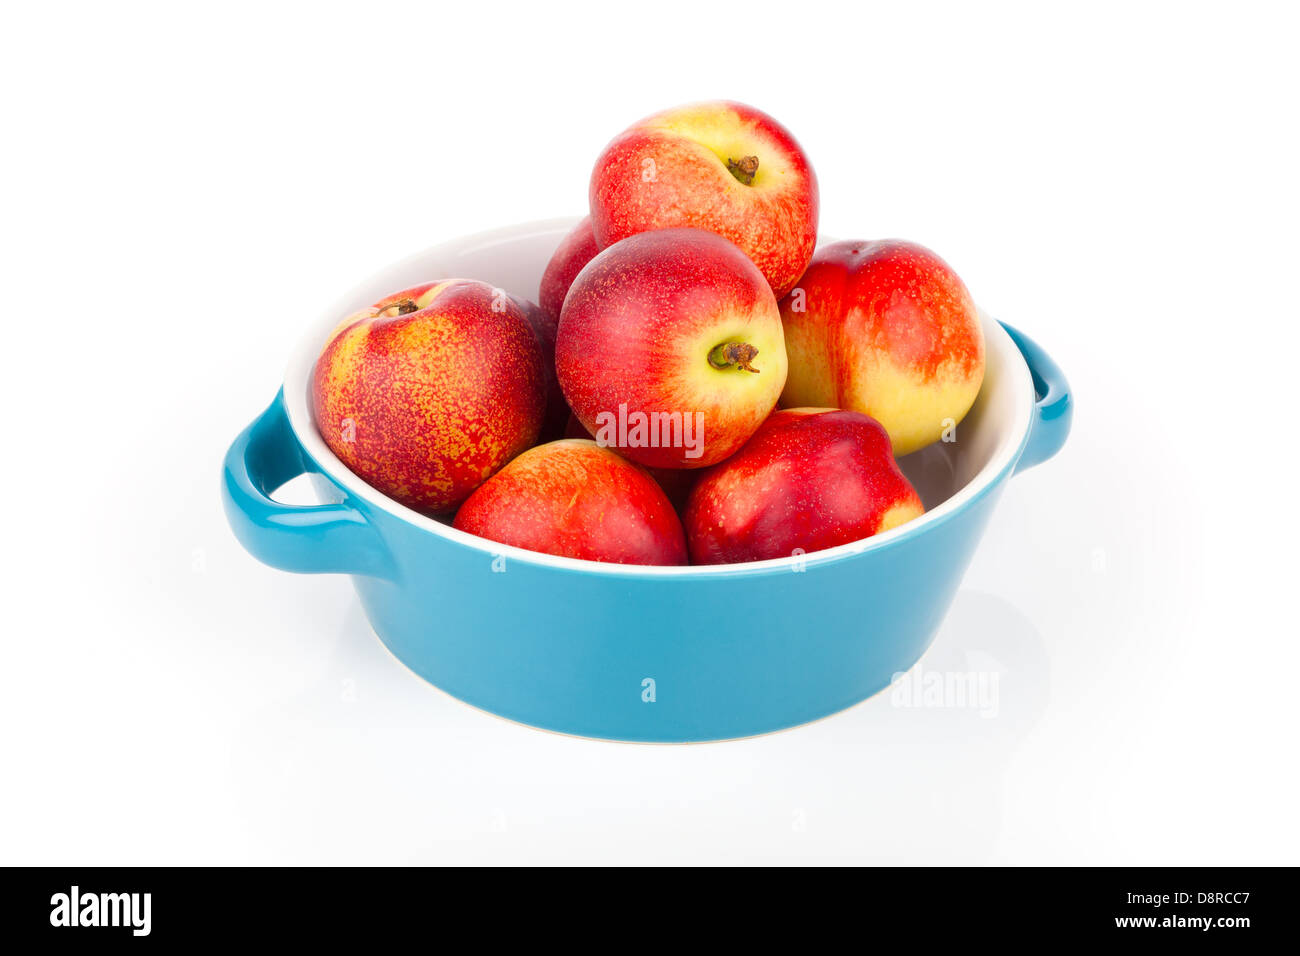 red ripe nectarine peaches on bowl, isolated on white - Stock Image